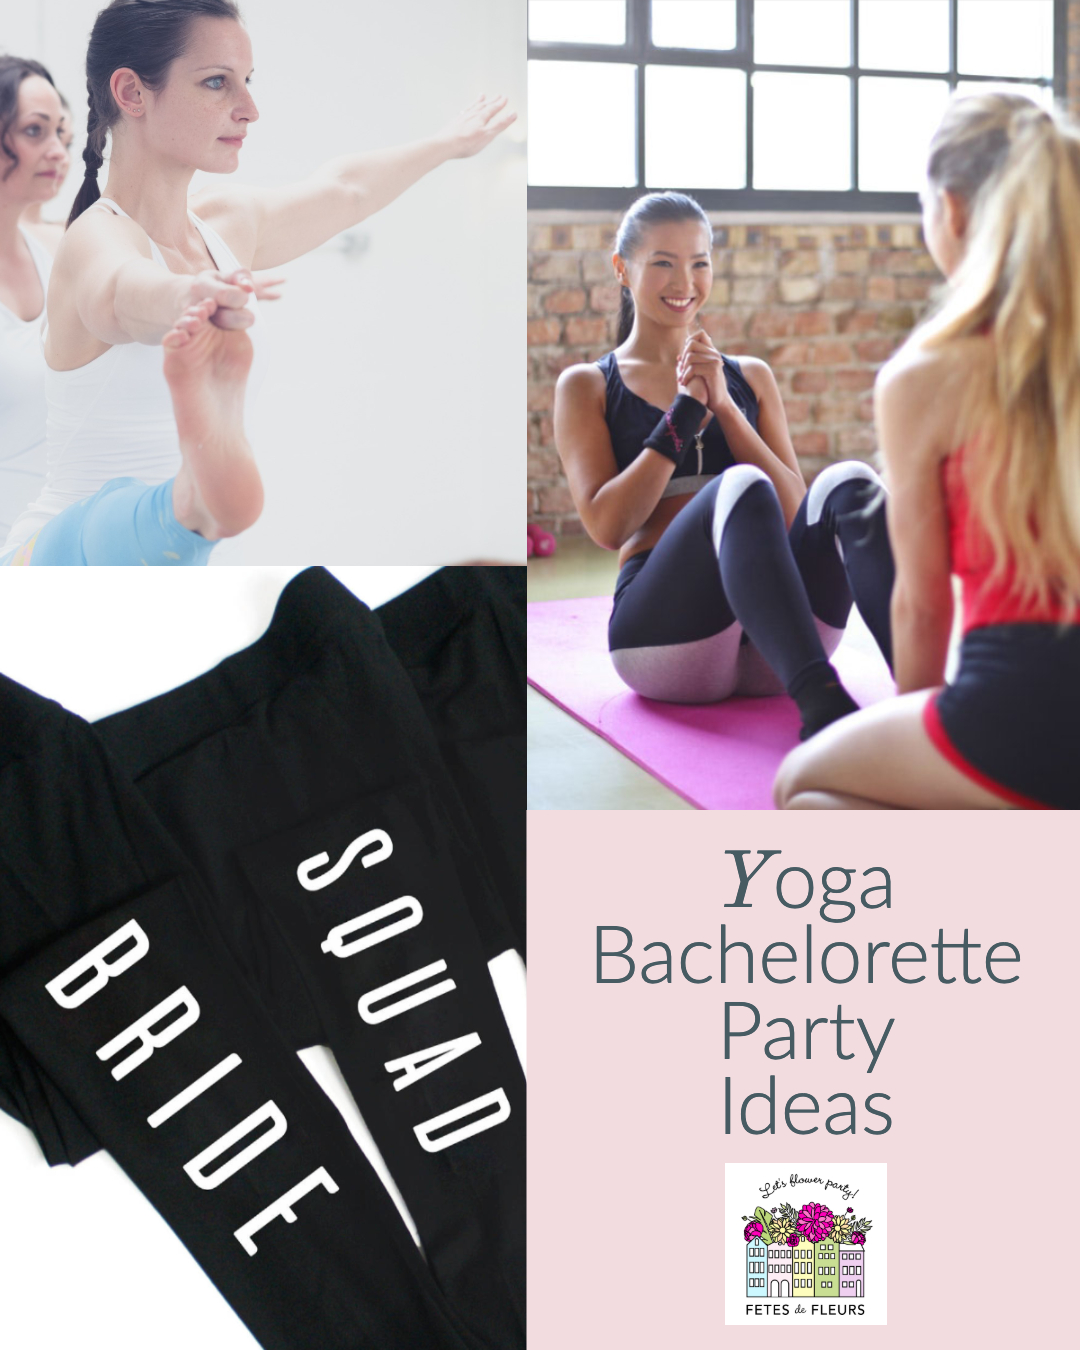 yoga bachelorette party ideas